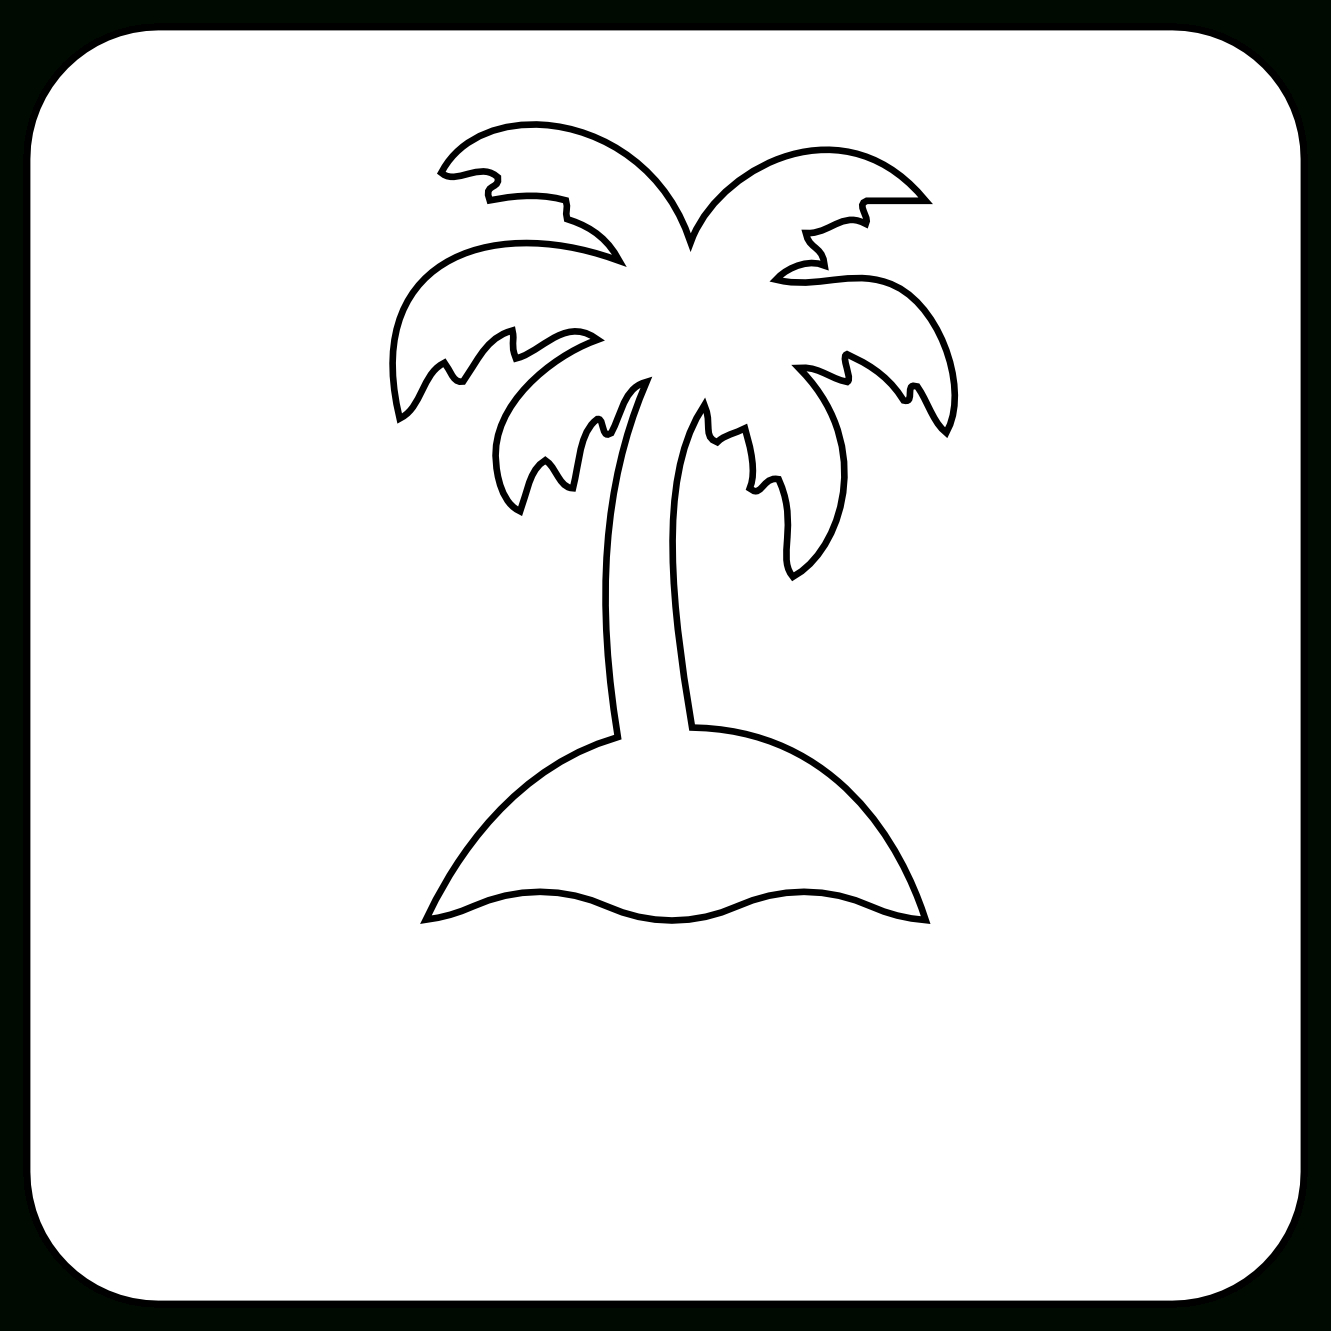 1331x1331 How To Draw A Palm Tree Step 2. How To Draw A Palm Tree. Simple